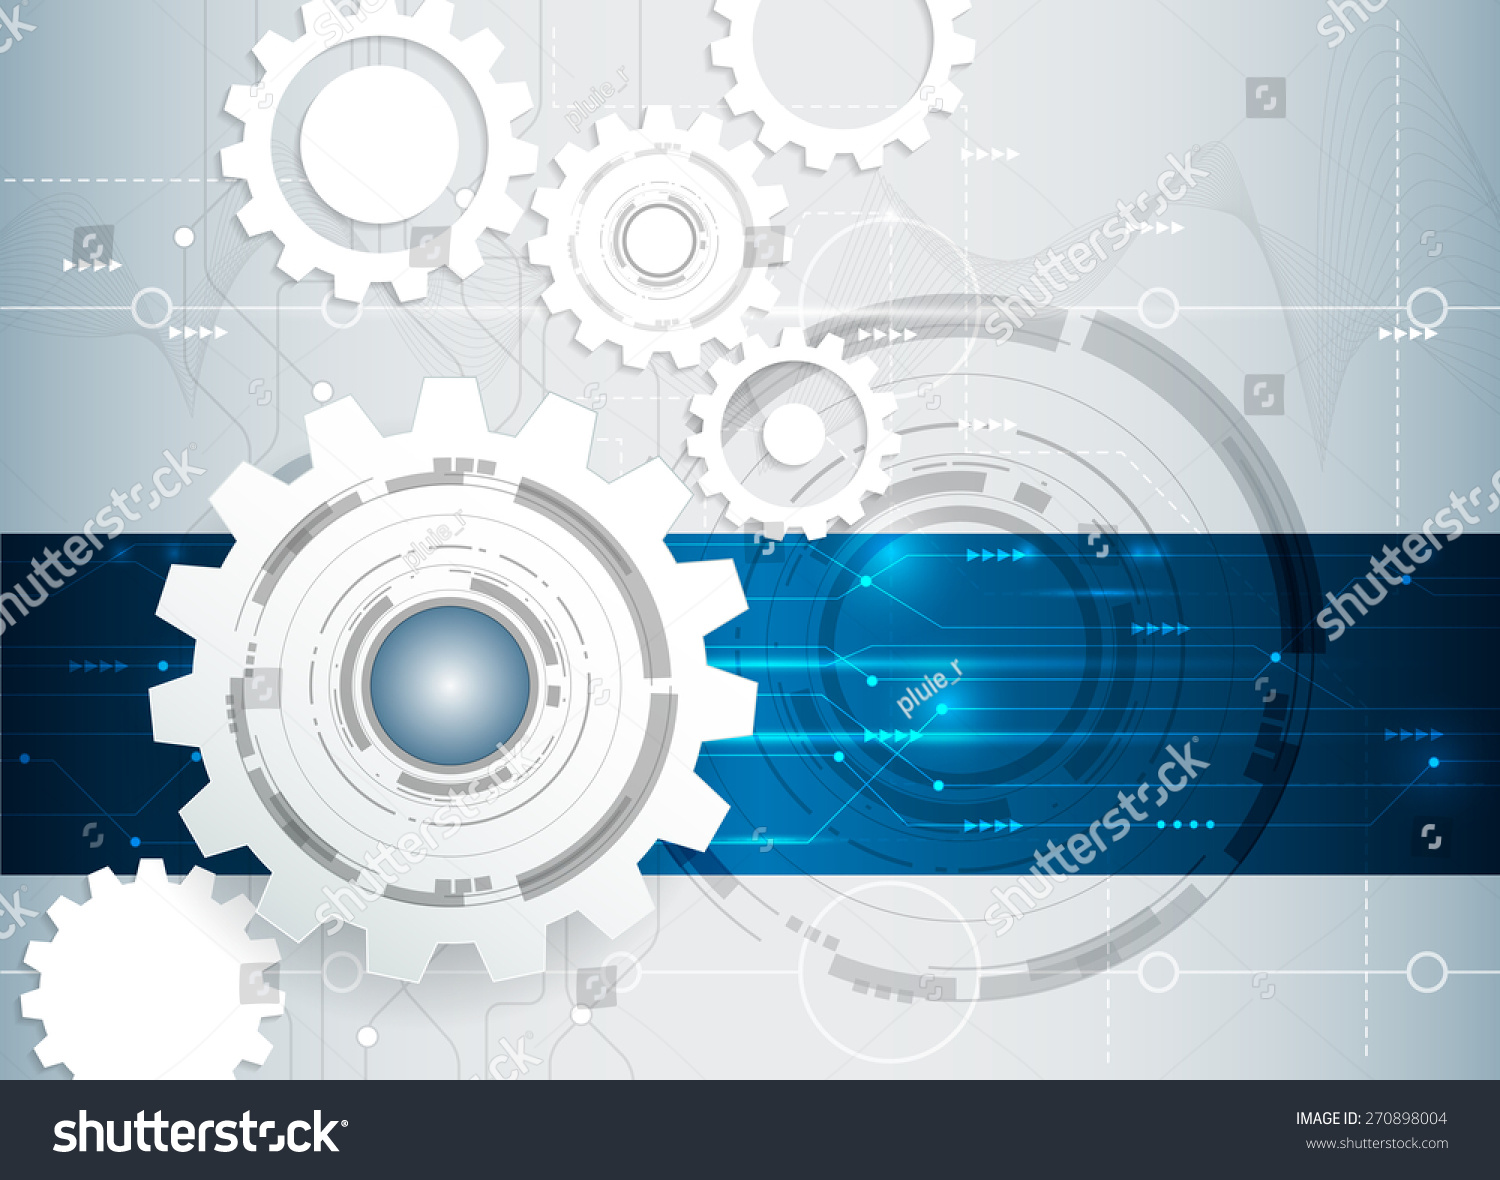 Vector Illustration Abstract Futuristic White Gear Stock Circuit Board Royalty Free Image Wheel On High Computer Technology Business